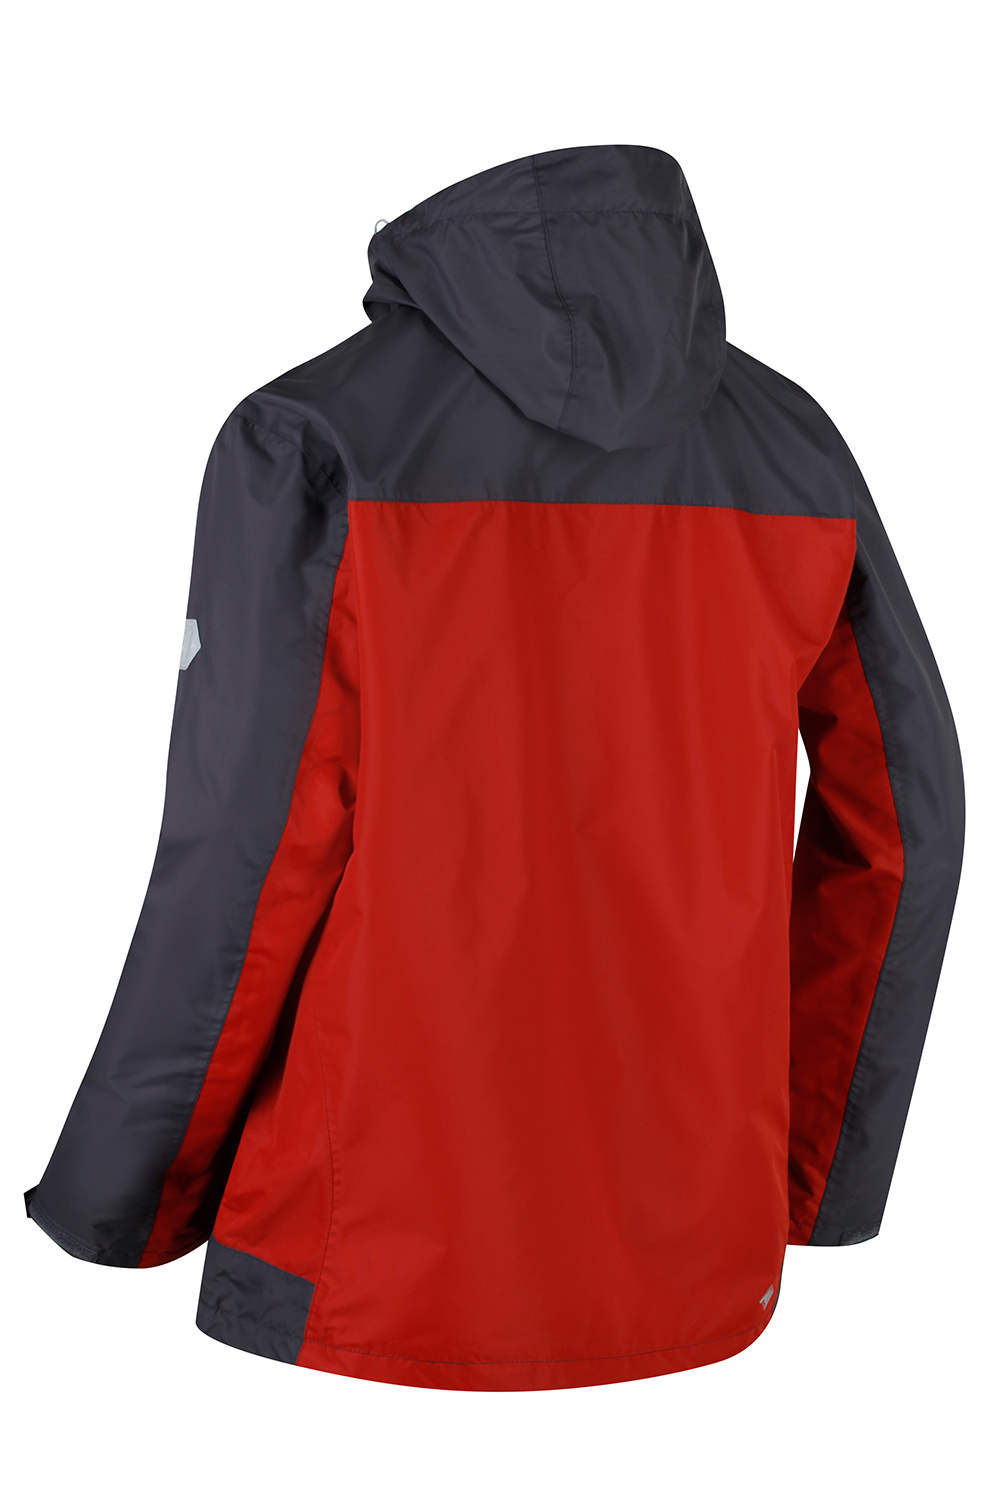 Regatta-Mens-Calderdale-II-Jacket-Waterproof-Breathable-Isotex-5000-Hooded-Coat thumbnail 18